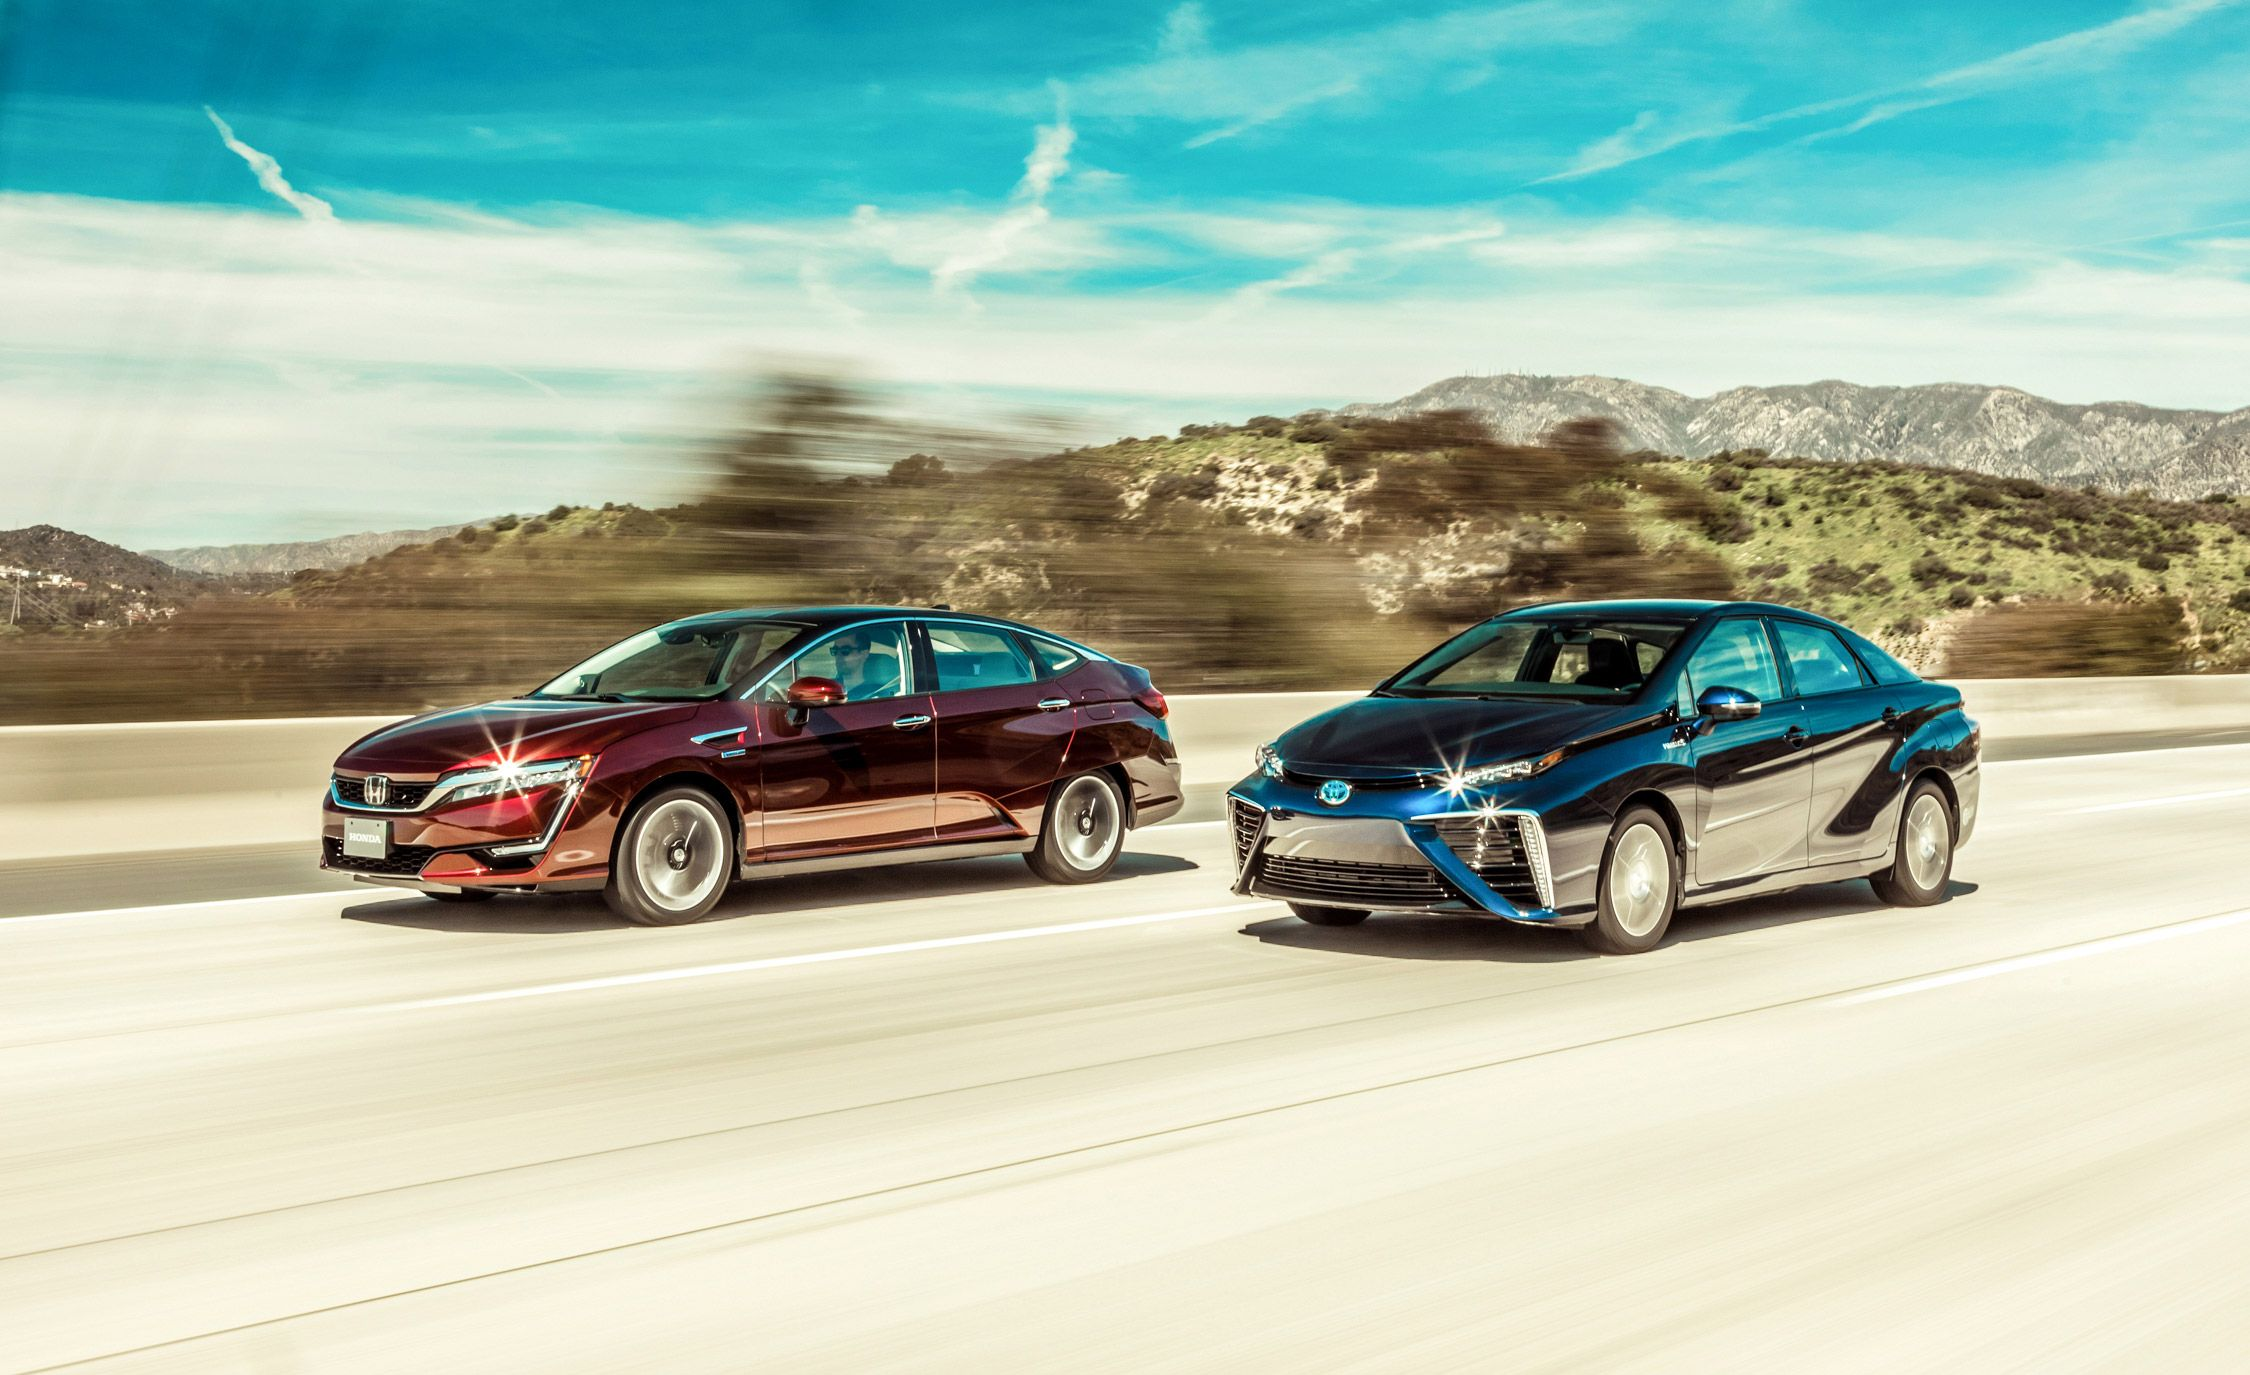 Honda Clarity And Toyota Mirai Hydrogen Fuel Cell Cars Compared Comparison Test Car Driver